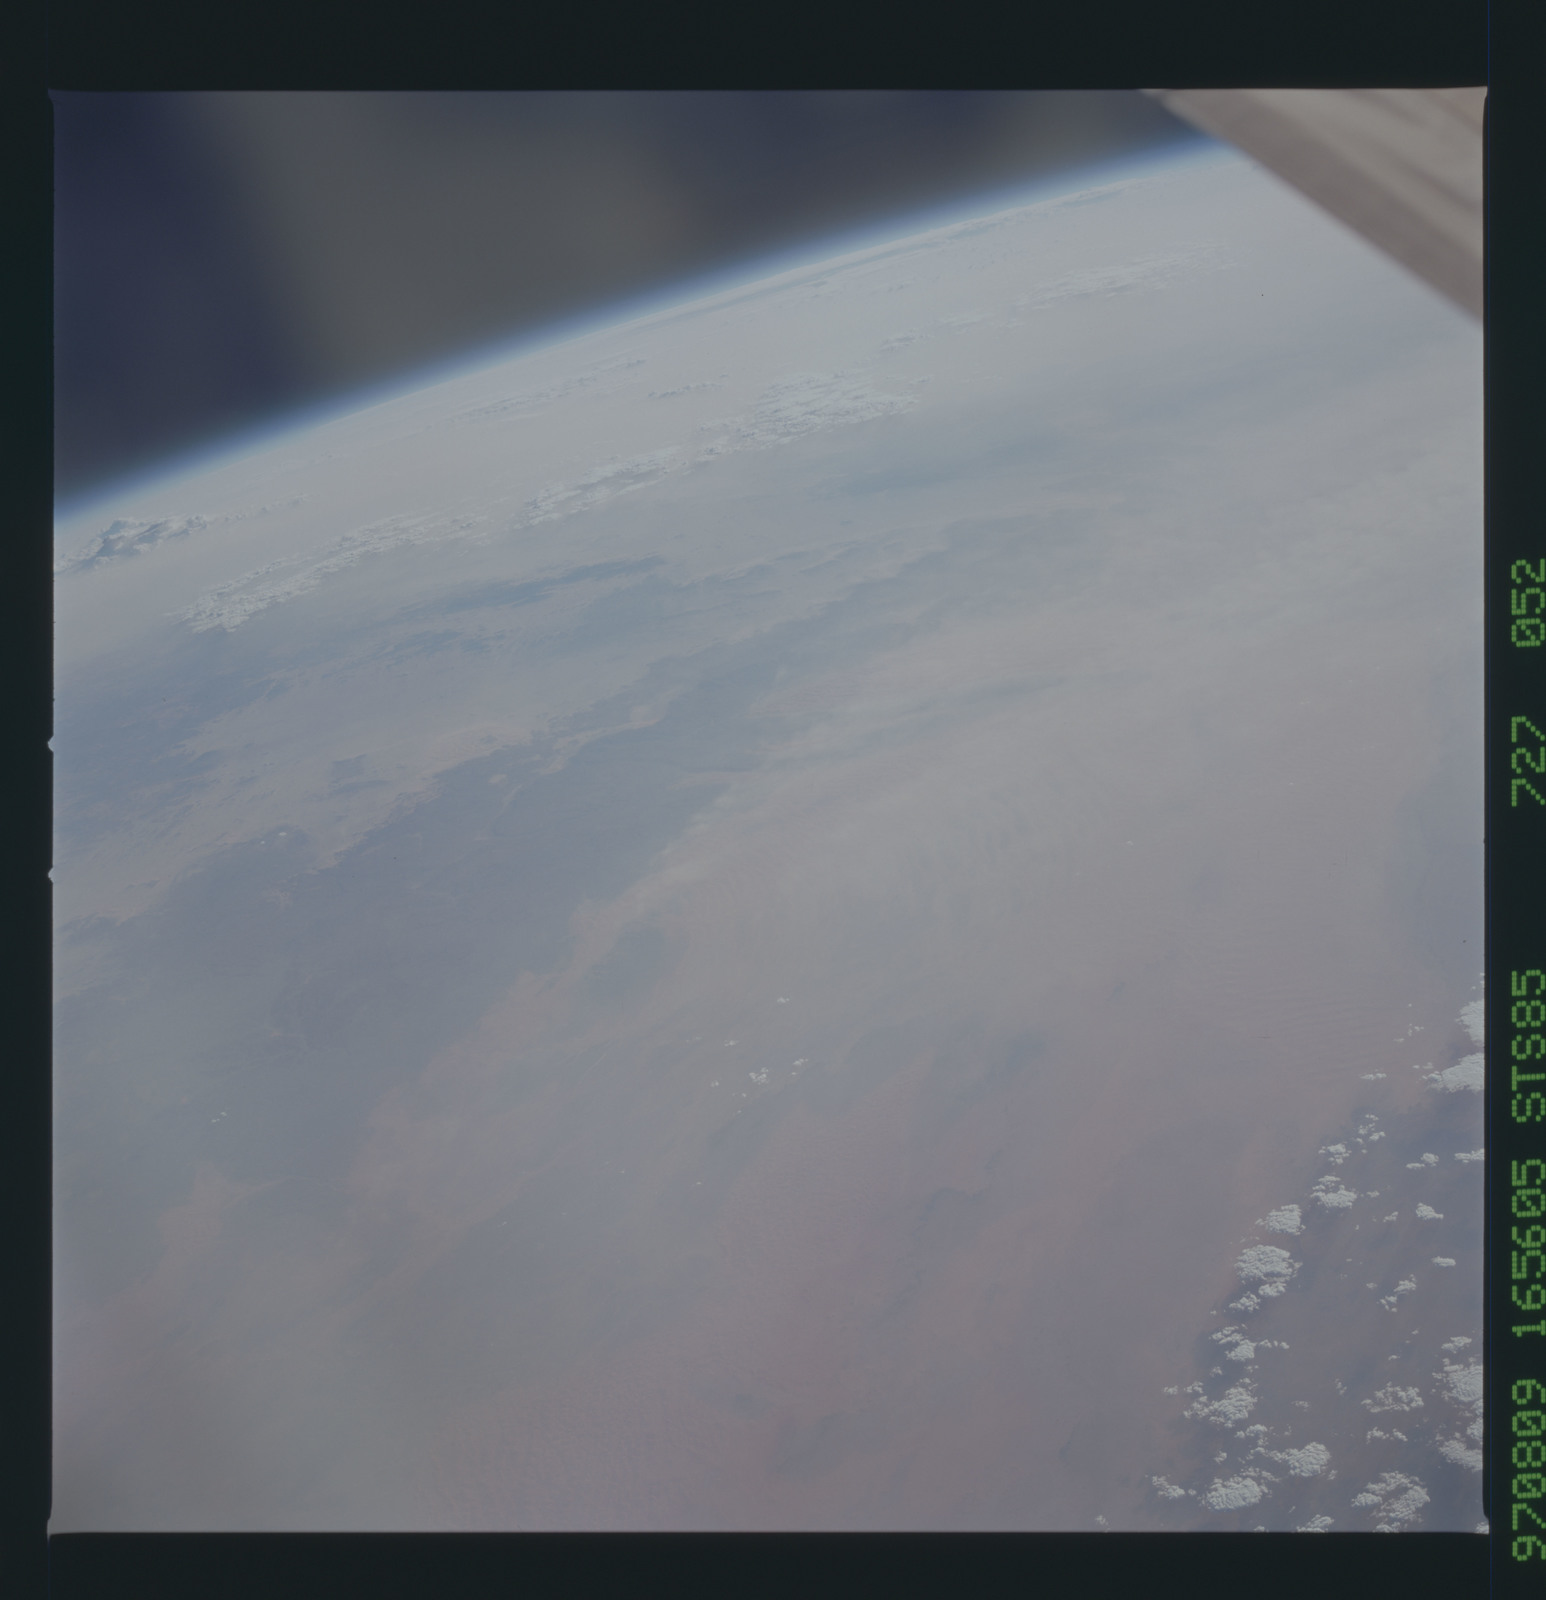 STS085-727-052 - STS-085 - Earth observations taken from orbiter Discovery during STS-85 mission